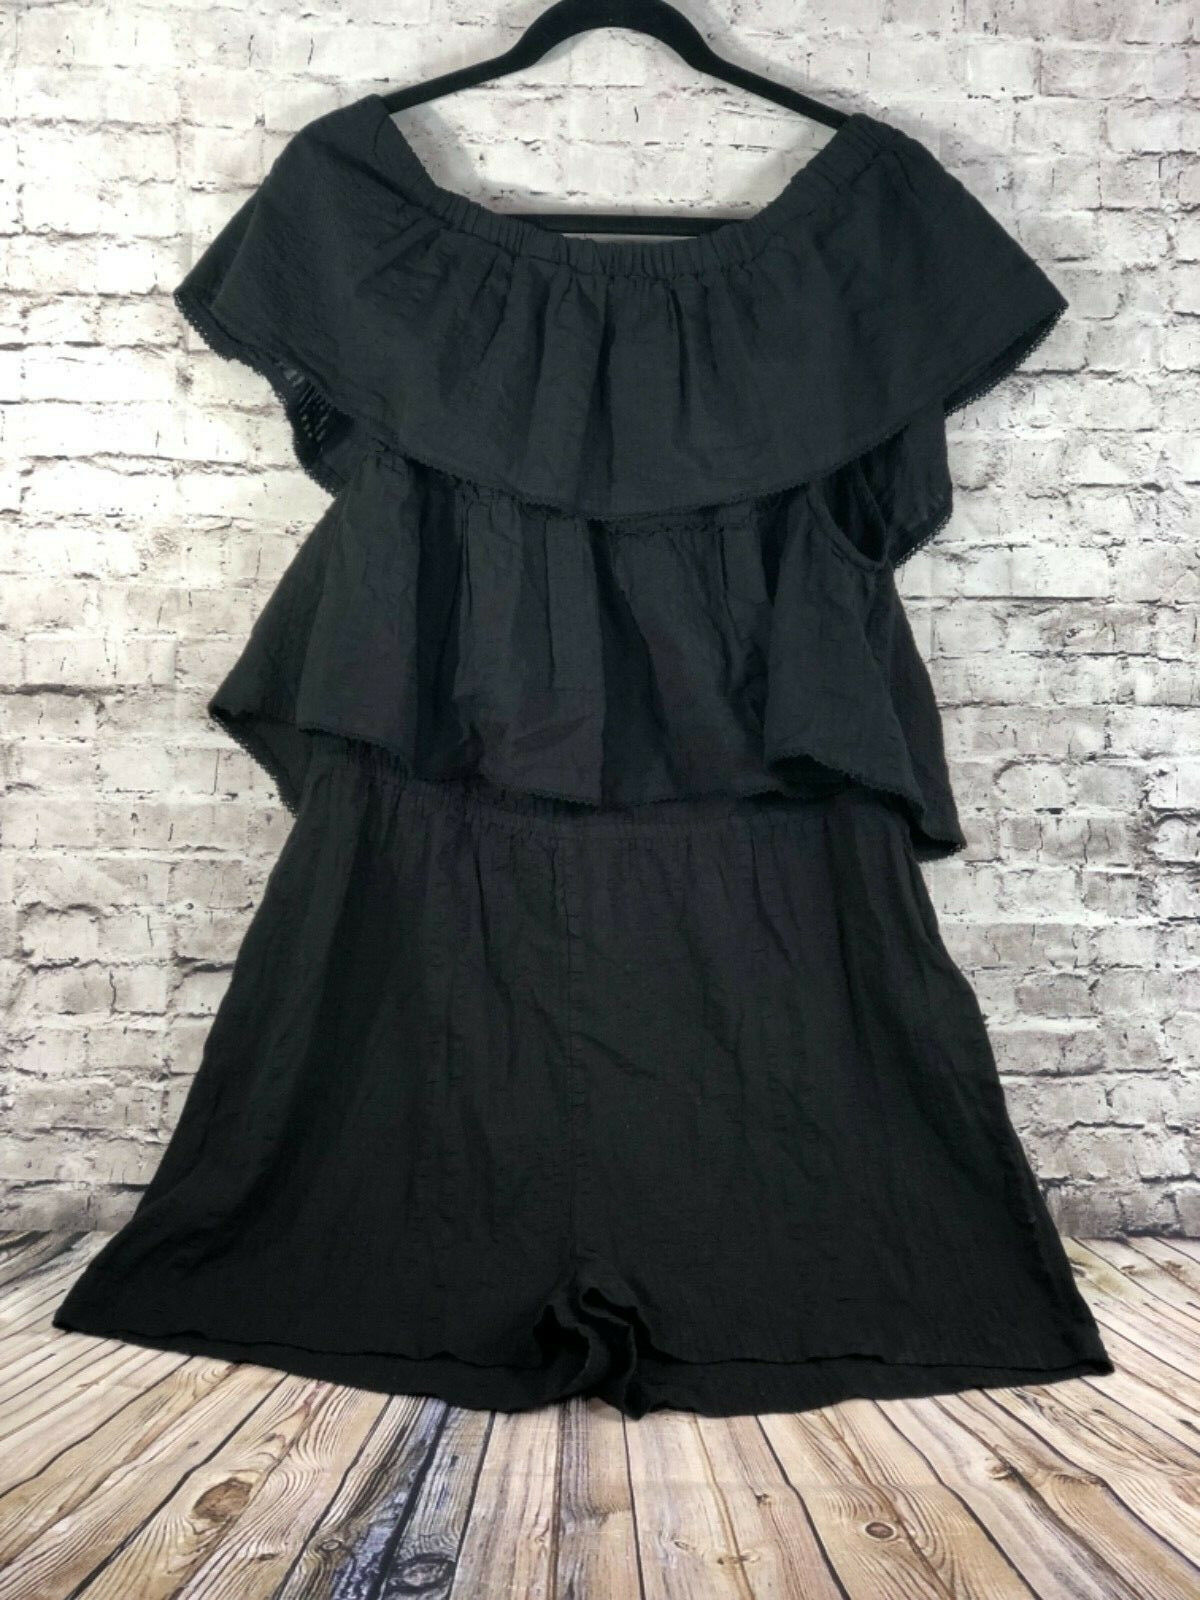 TopShop double layer ruffle off shoulder playsuit romper jumpsuit womens 12 nwt